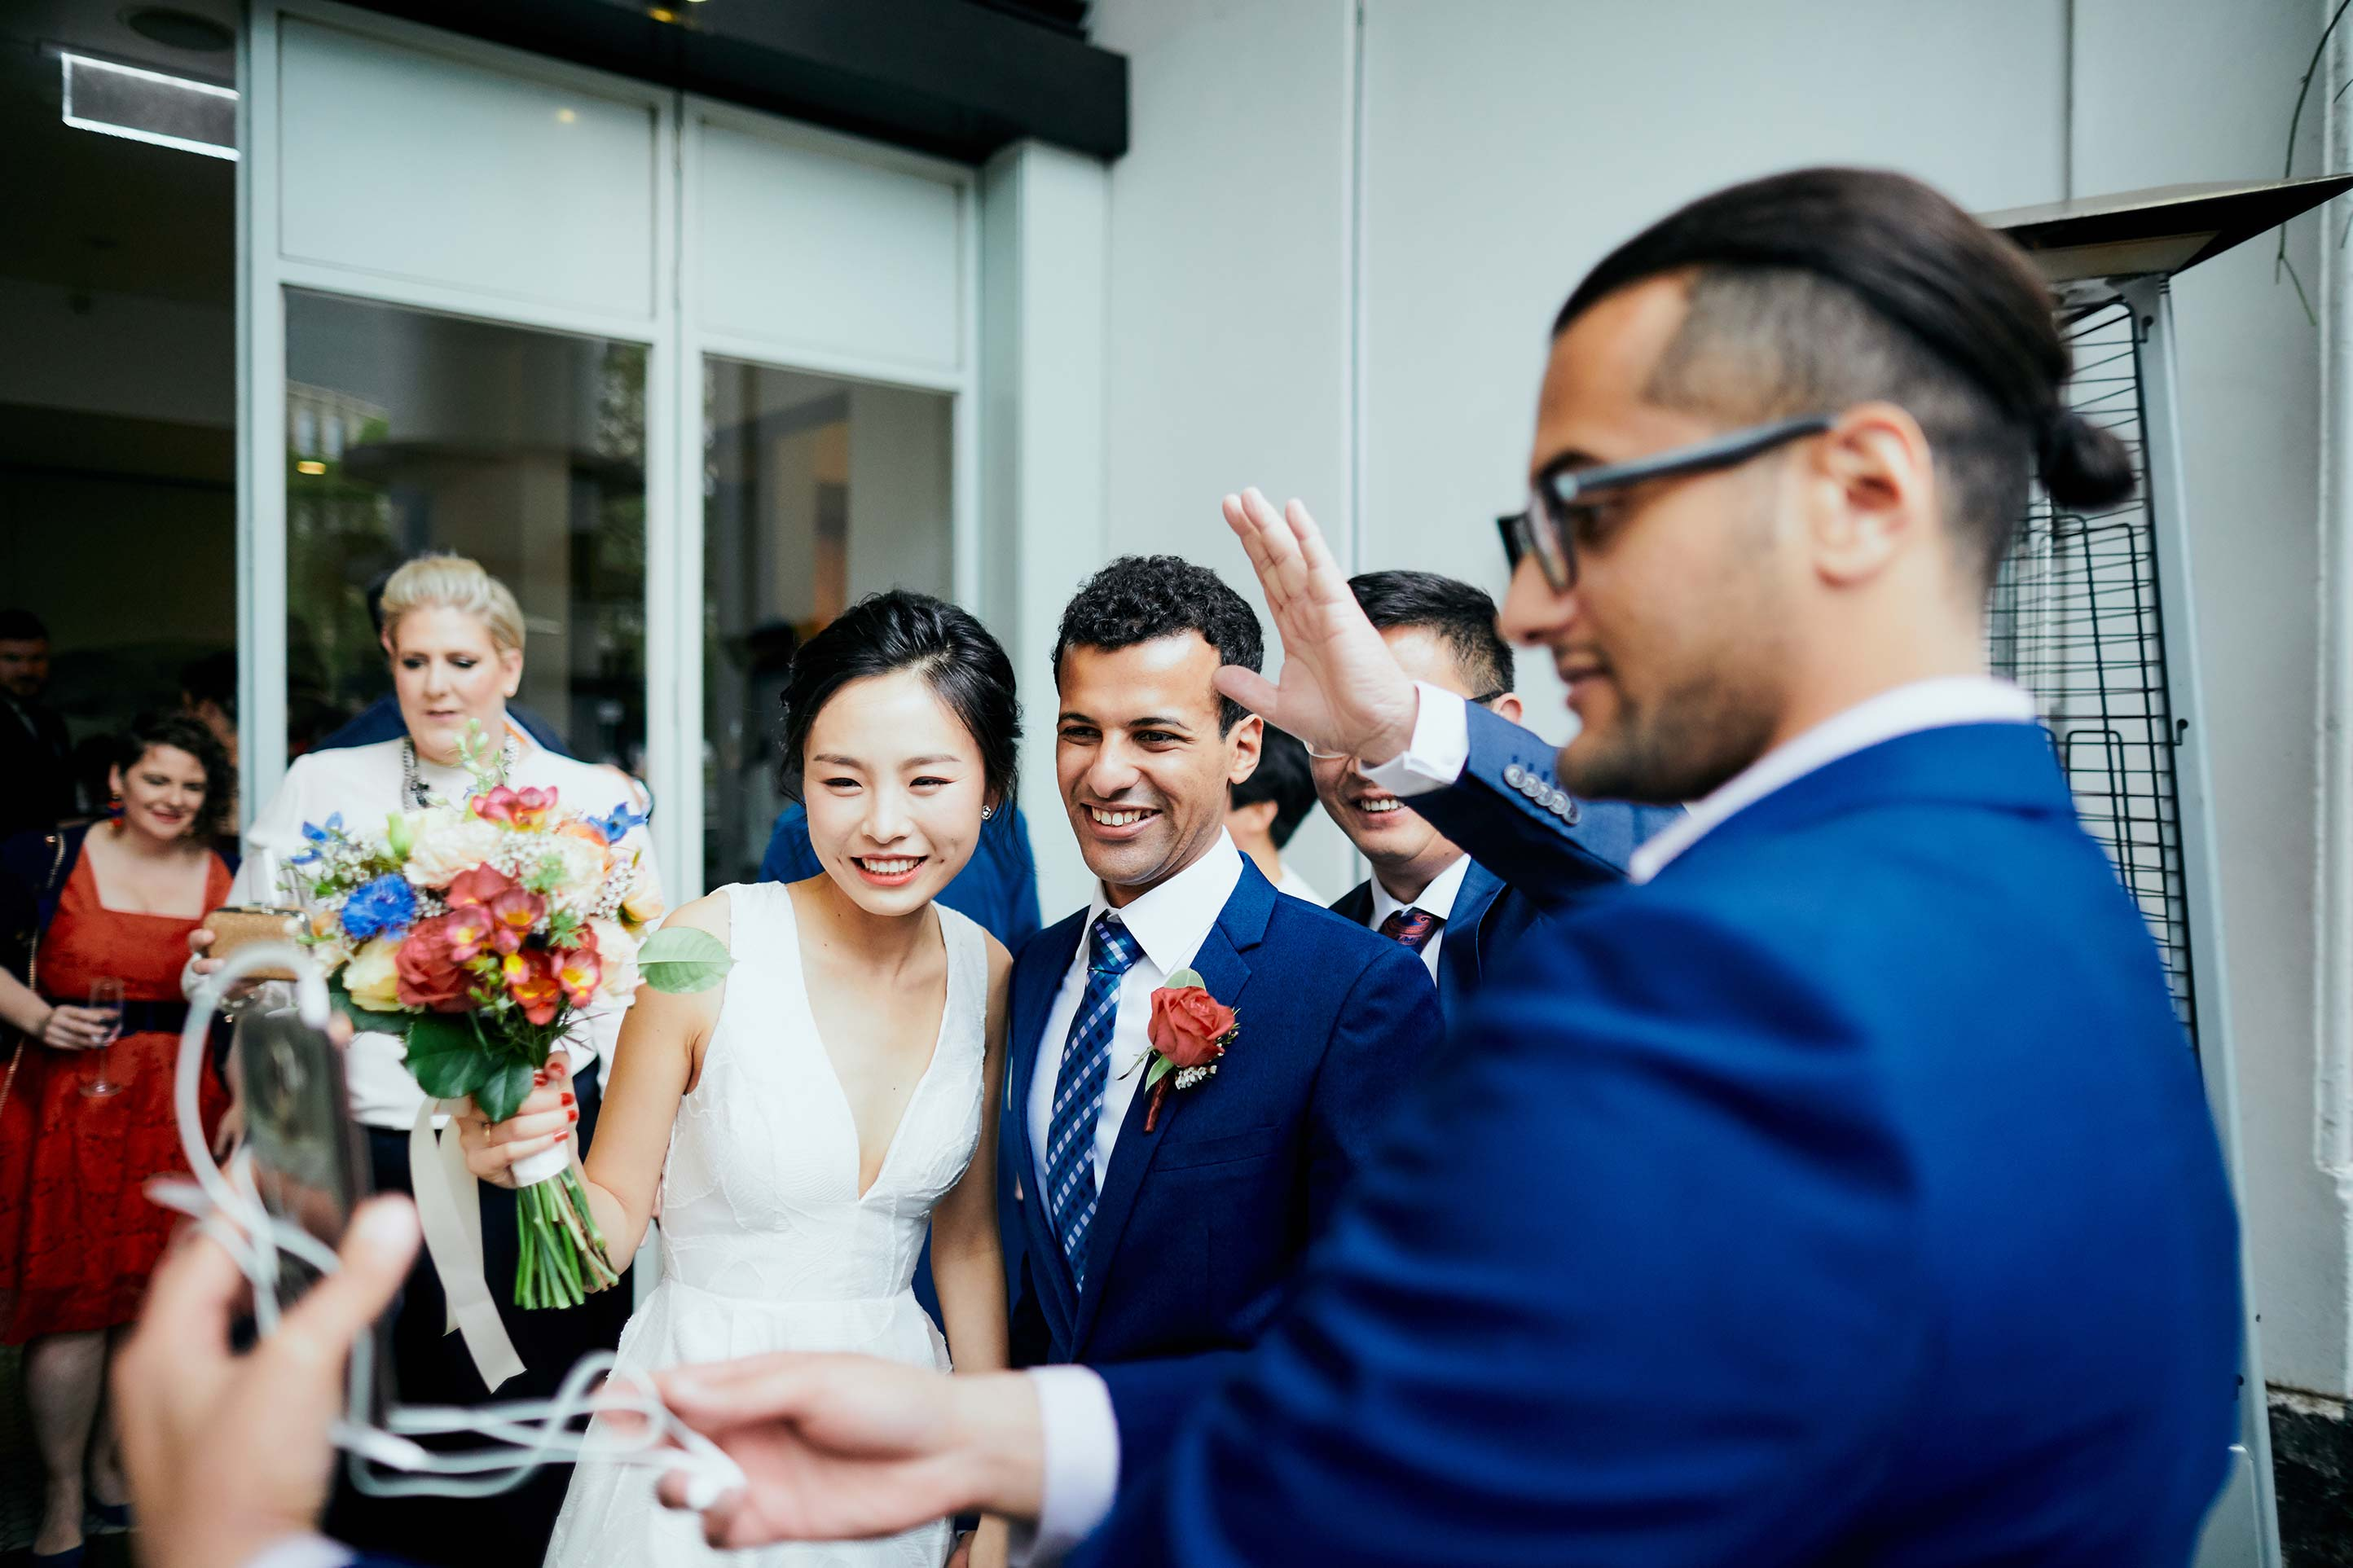 Melbourne-Wedding-Photographer-Kettle-Black-ceremony-phone